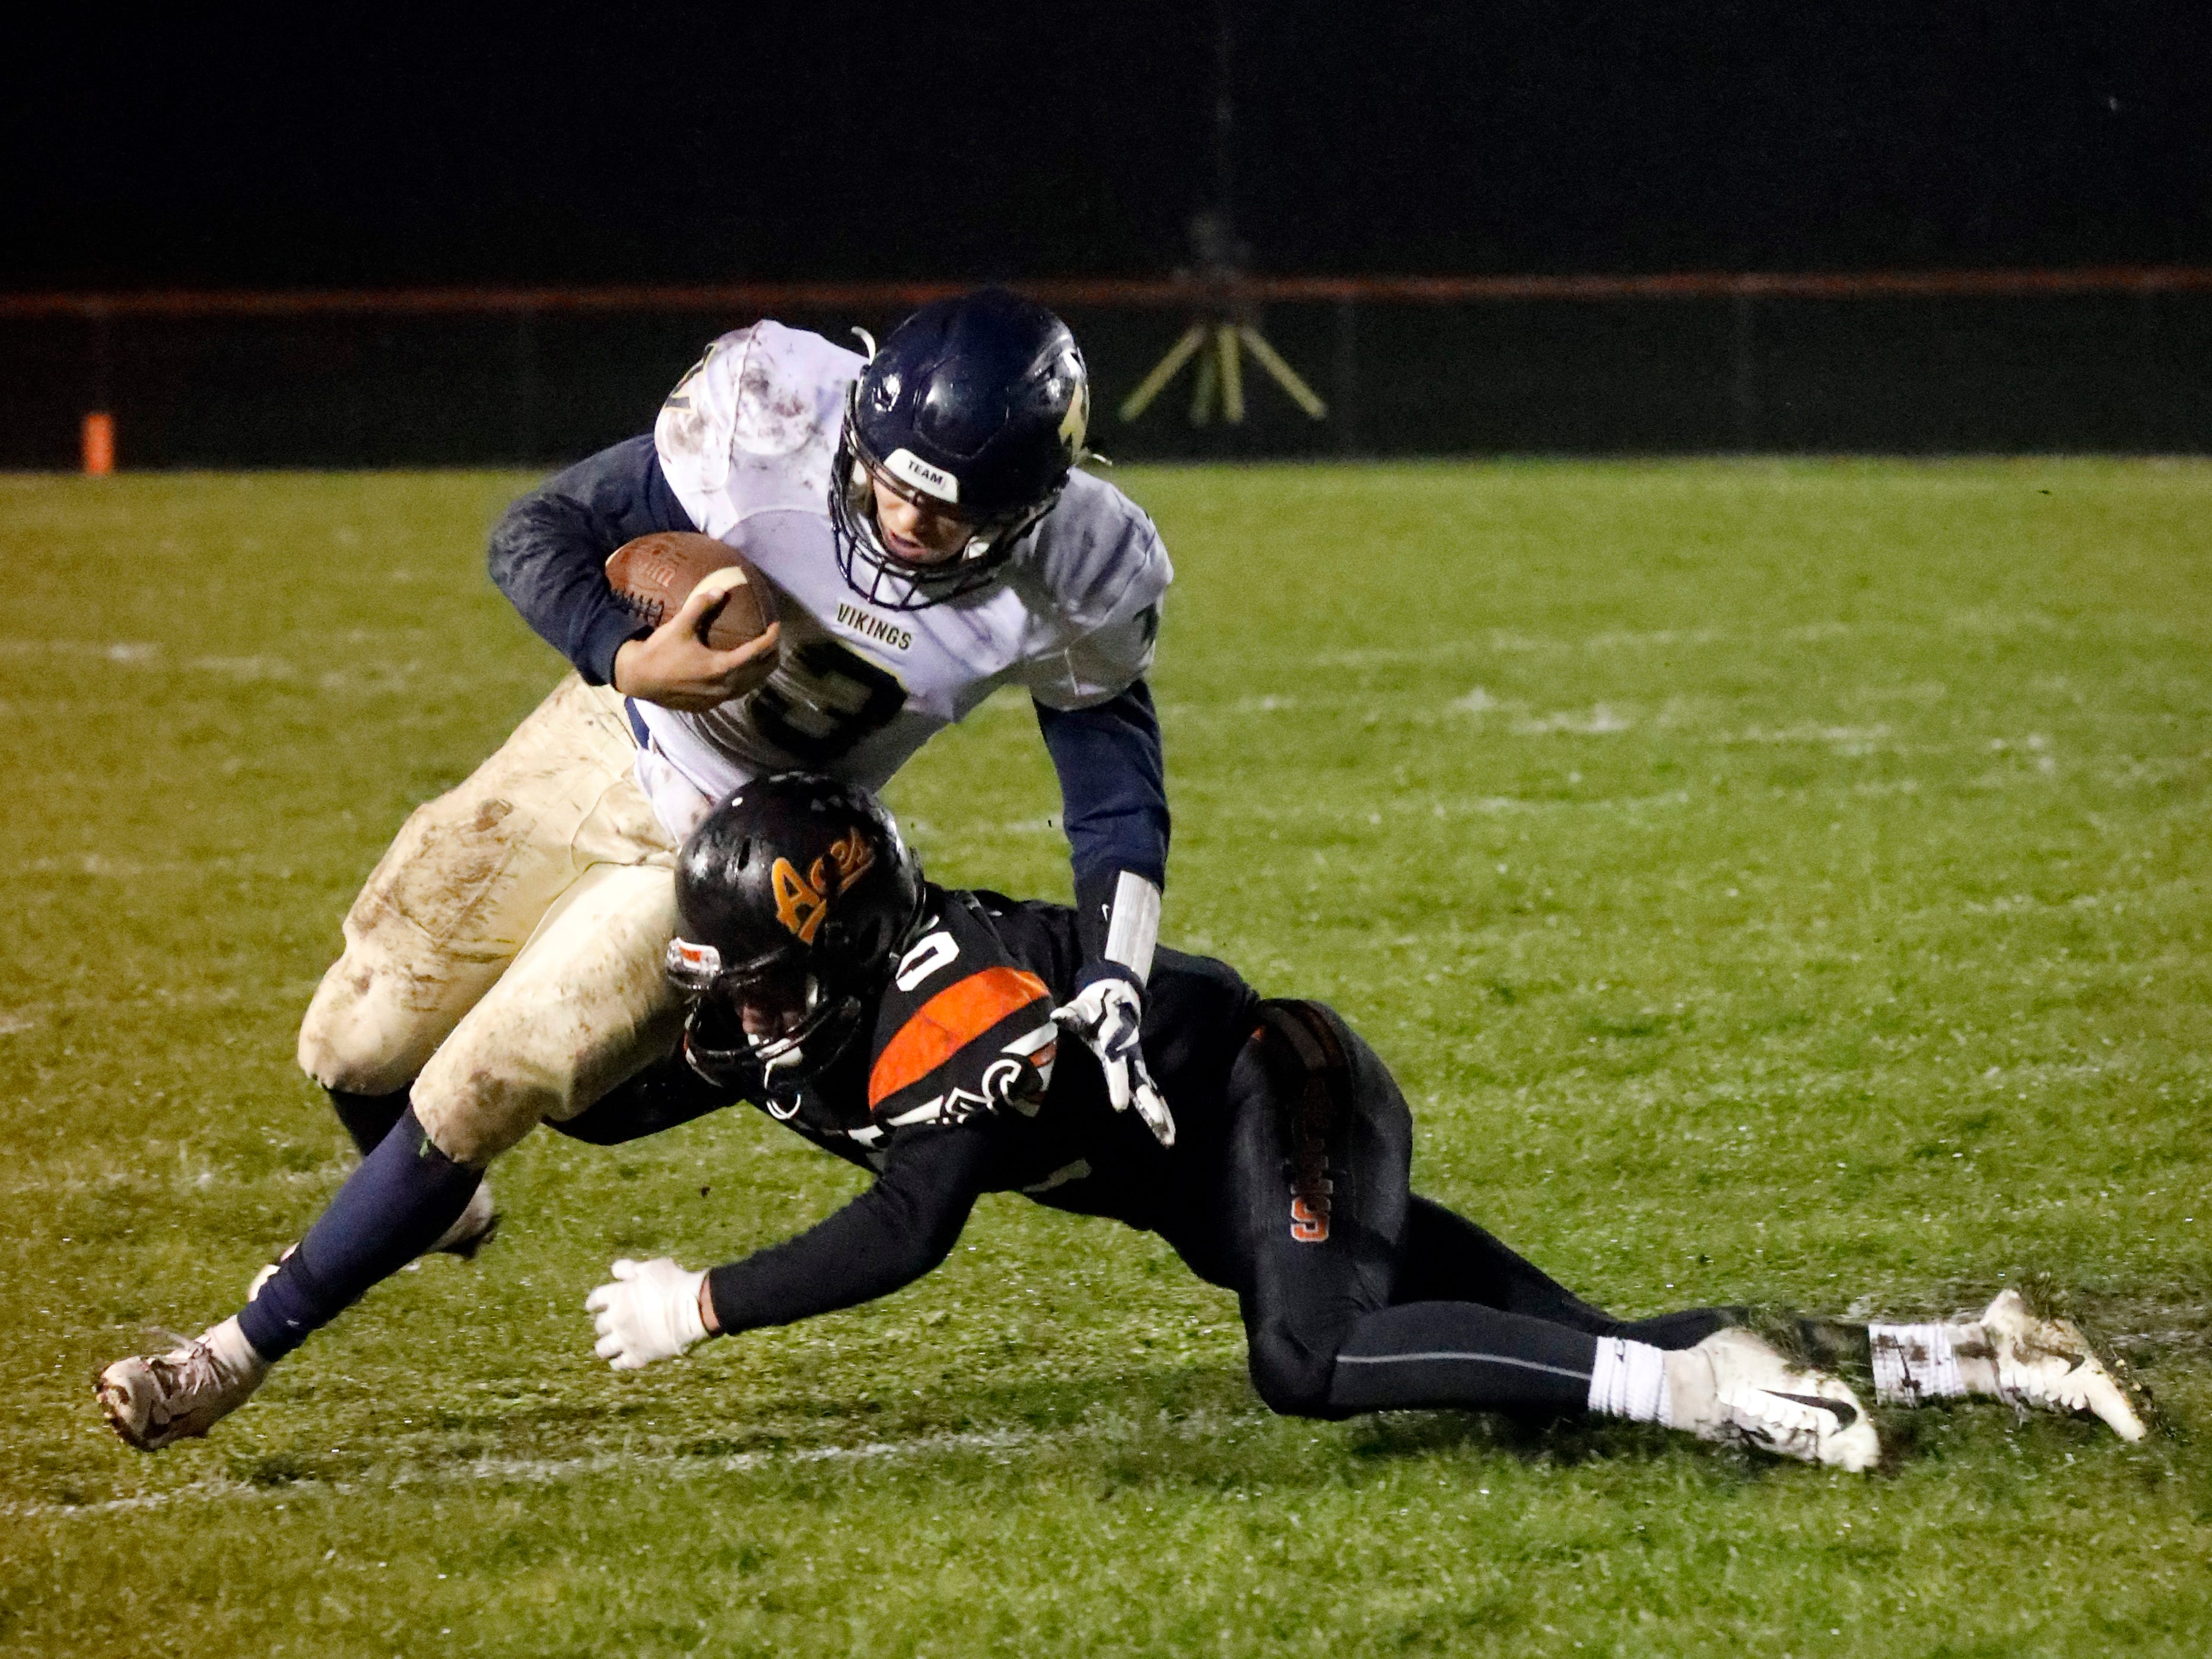 Amanda-Clearcreek's Jayse Miller tackles Teays Valley's Tristan McDanel Friday night, Oct. 26, 2018, at Amanda-Clearcreek High School in Amanda. The Aces lost the Vikings 9-0.